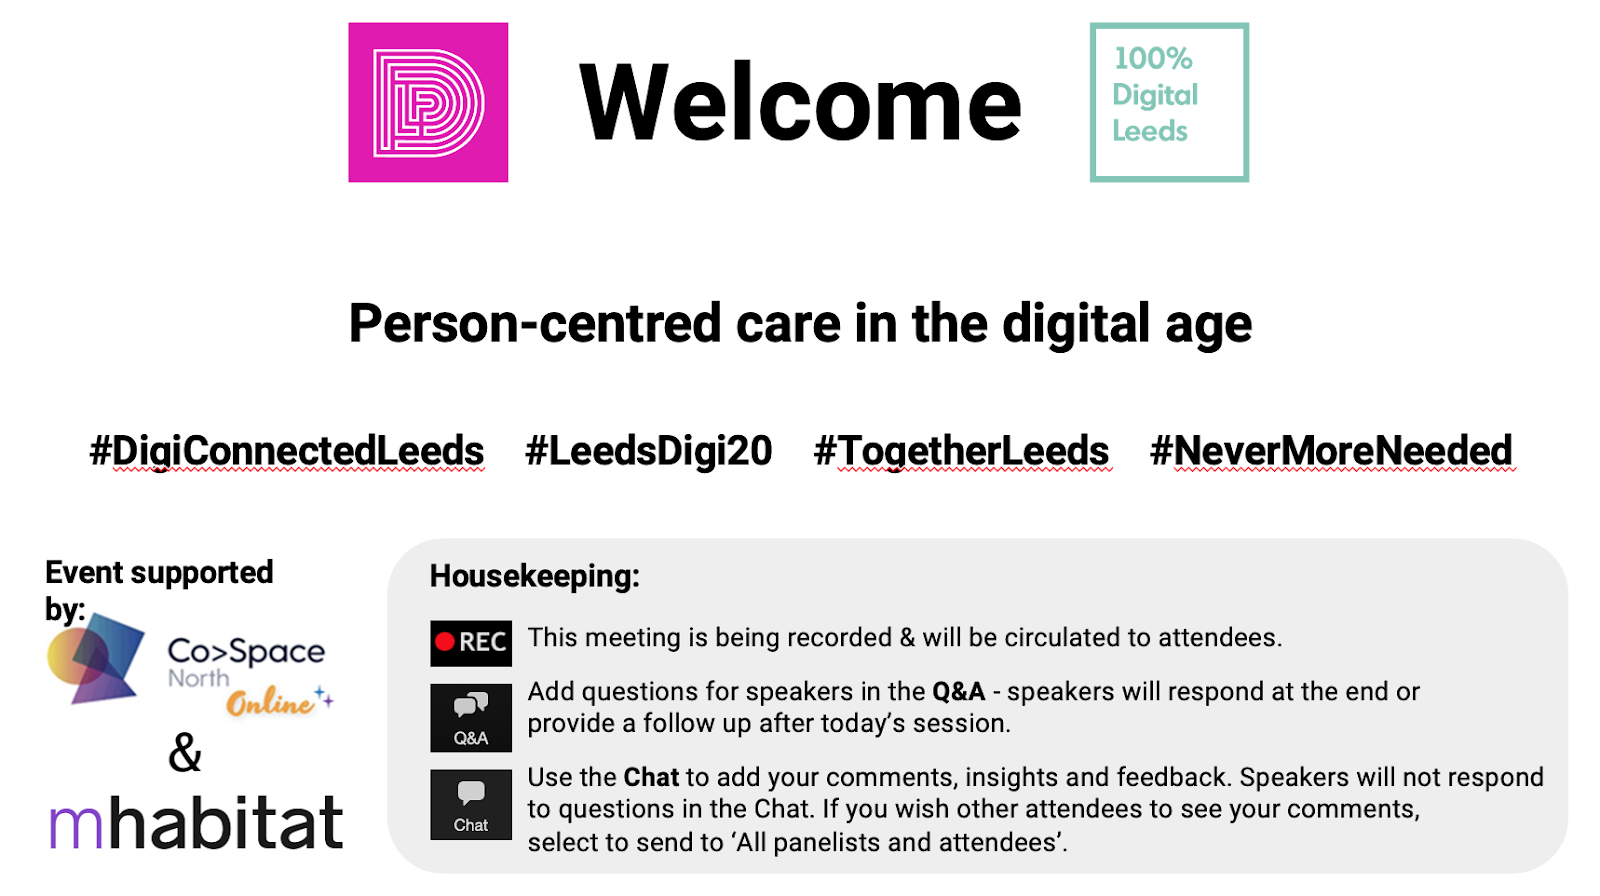 Example 'welcome' slide including logos, title, hashtags, housekeeping rules